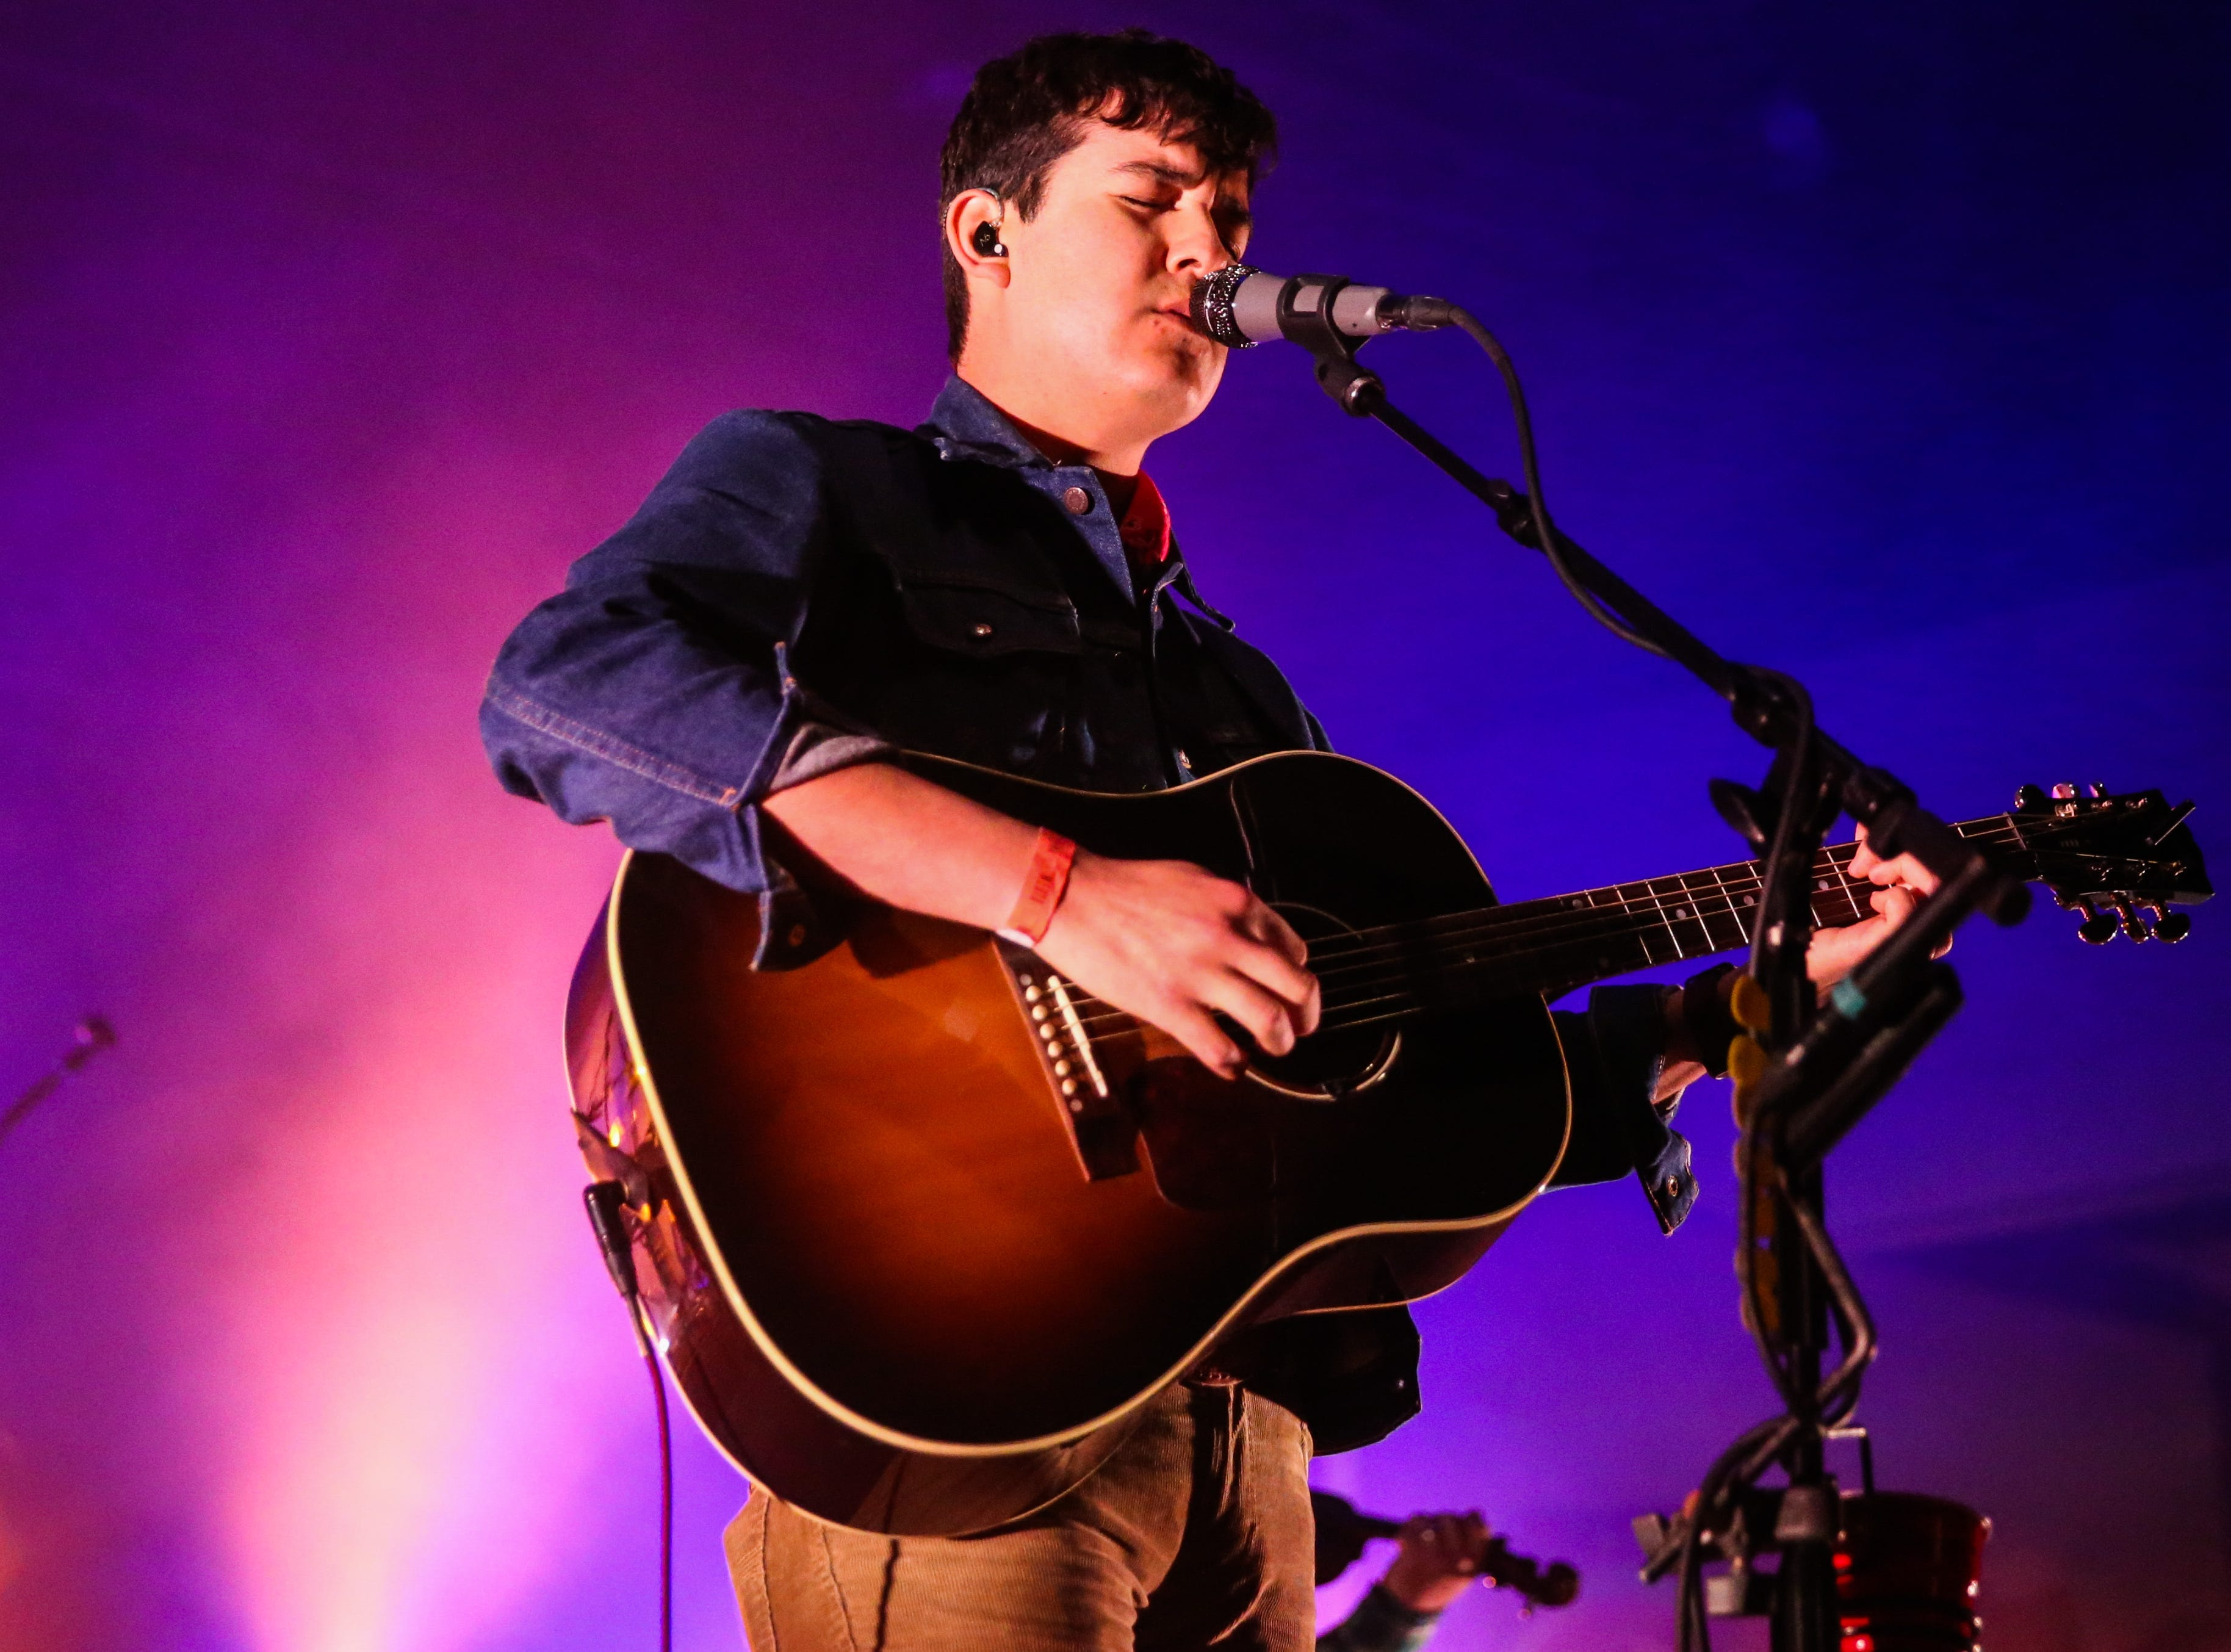 Flatland Cavalry performs during Wild West Fest Friday, March 1, 2019, at the Bill Aylor Sr. Memorial RiverStage.